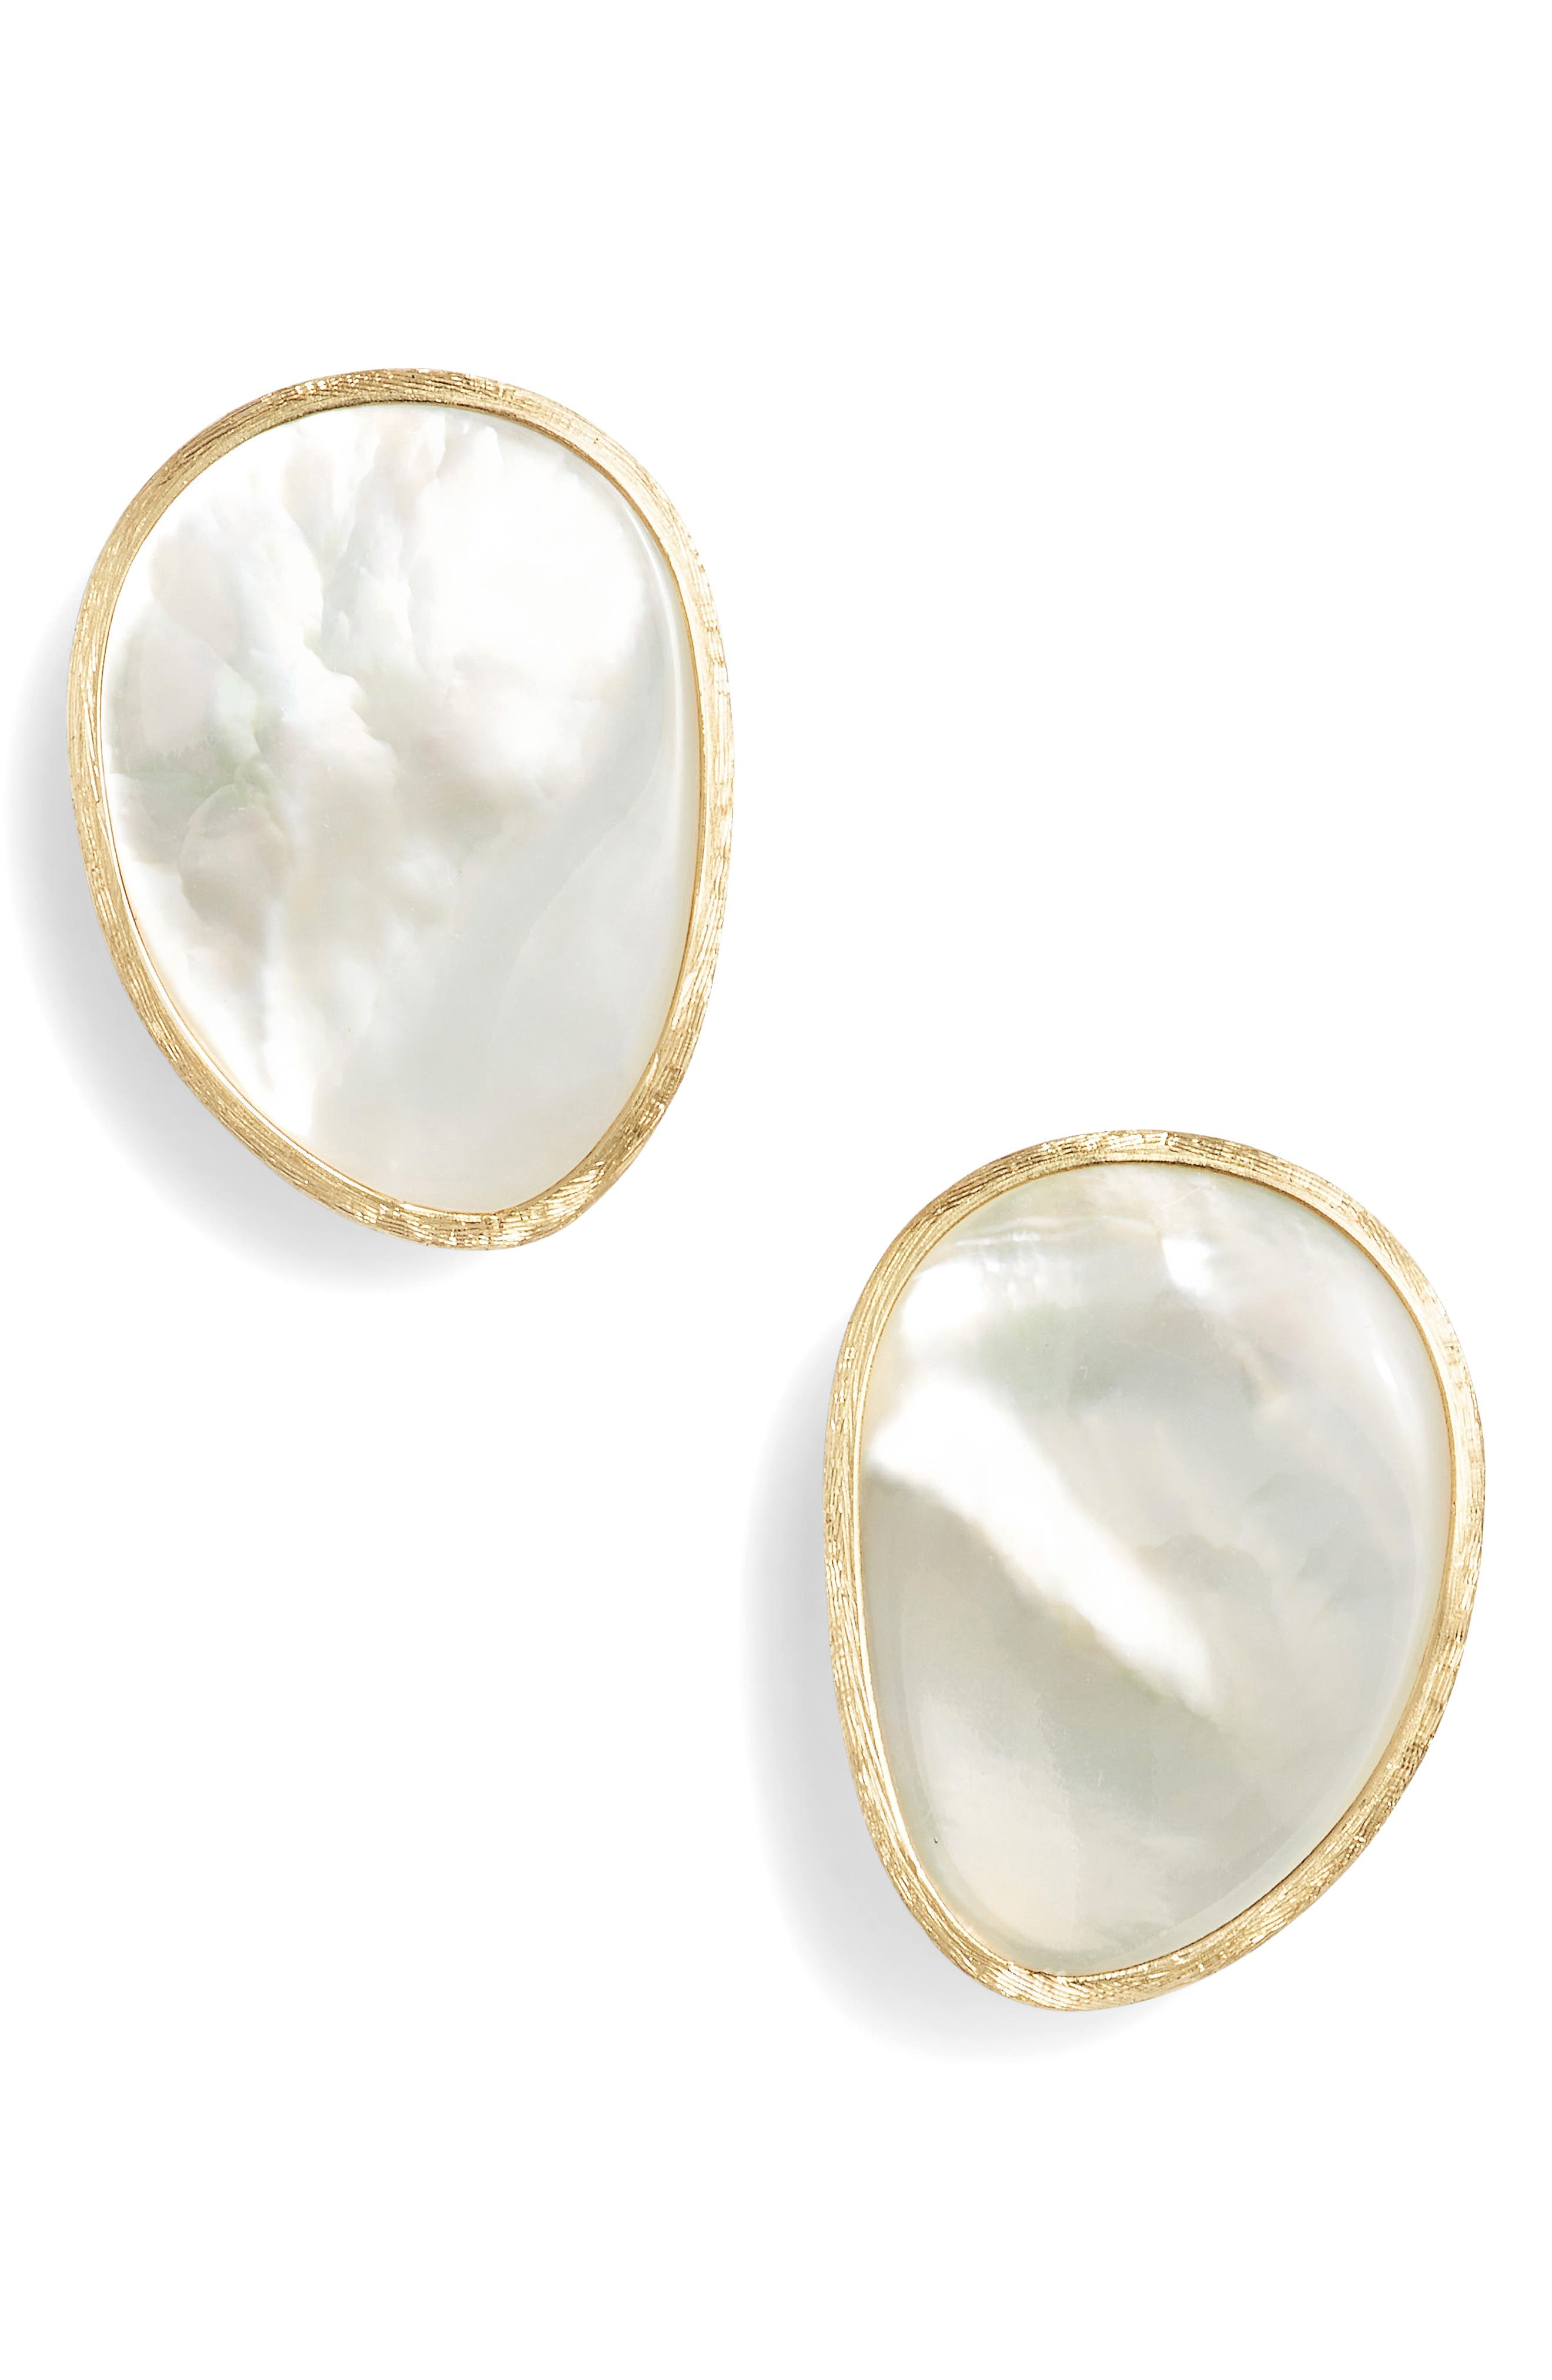 Lunaria Pearl Stud Earrings,                         Main,                         color, White Mother Of Pearl